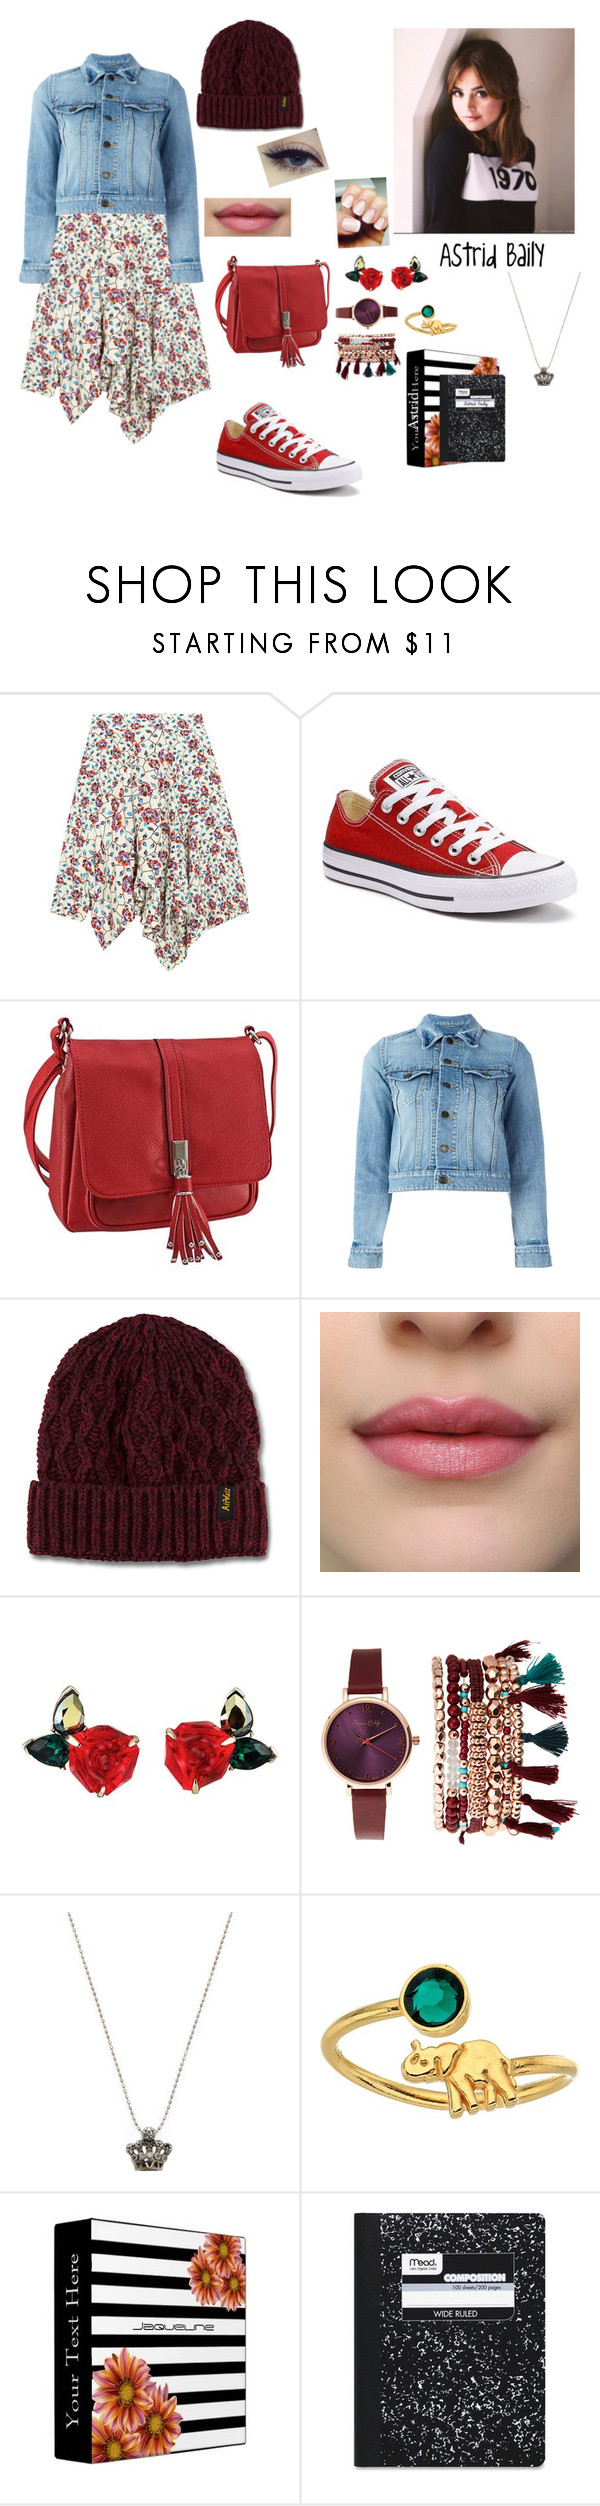 """""""Book character"""" by fancycupcakesquad ❤ liked on Polyvore featuring Isabel Marant, Converse, Yves Saint Laurent, Dr. Martens, Jessica Carlyle, Sydney Evan, Alex and Ani and Mead"""